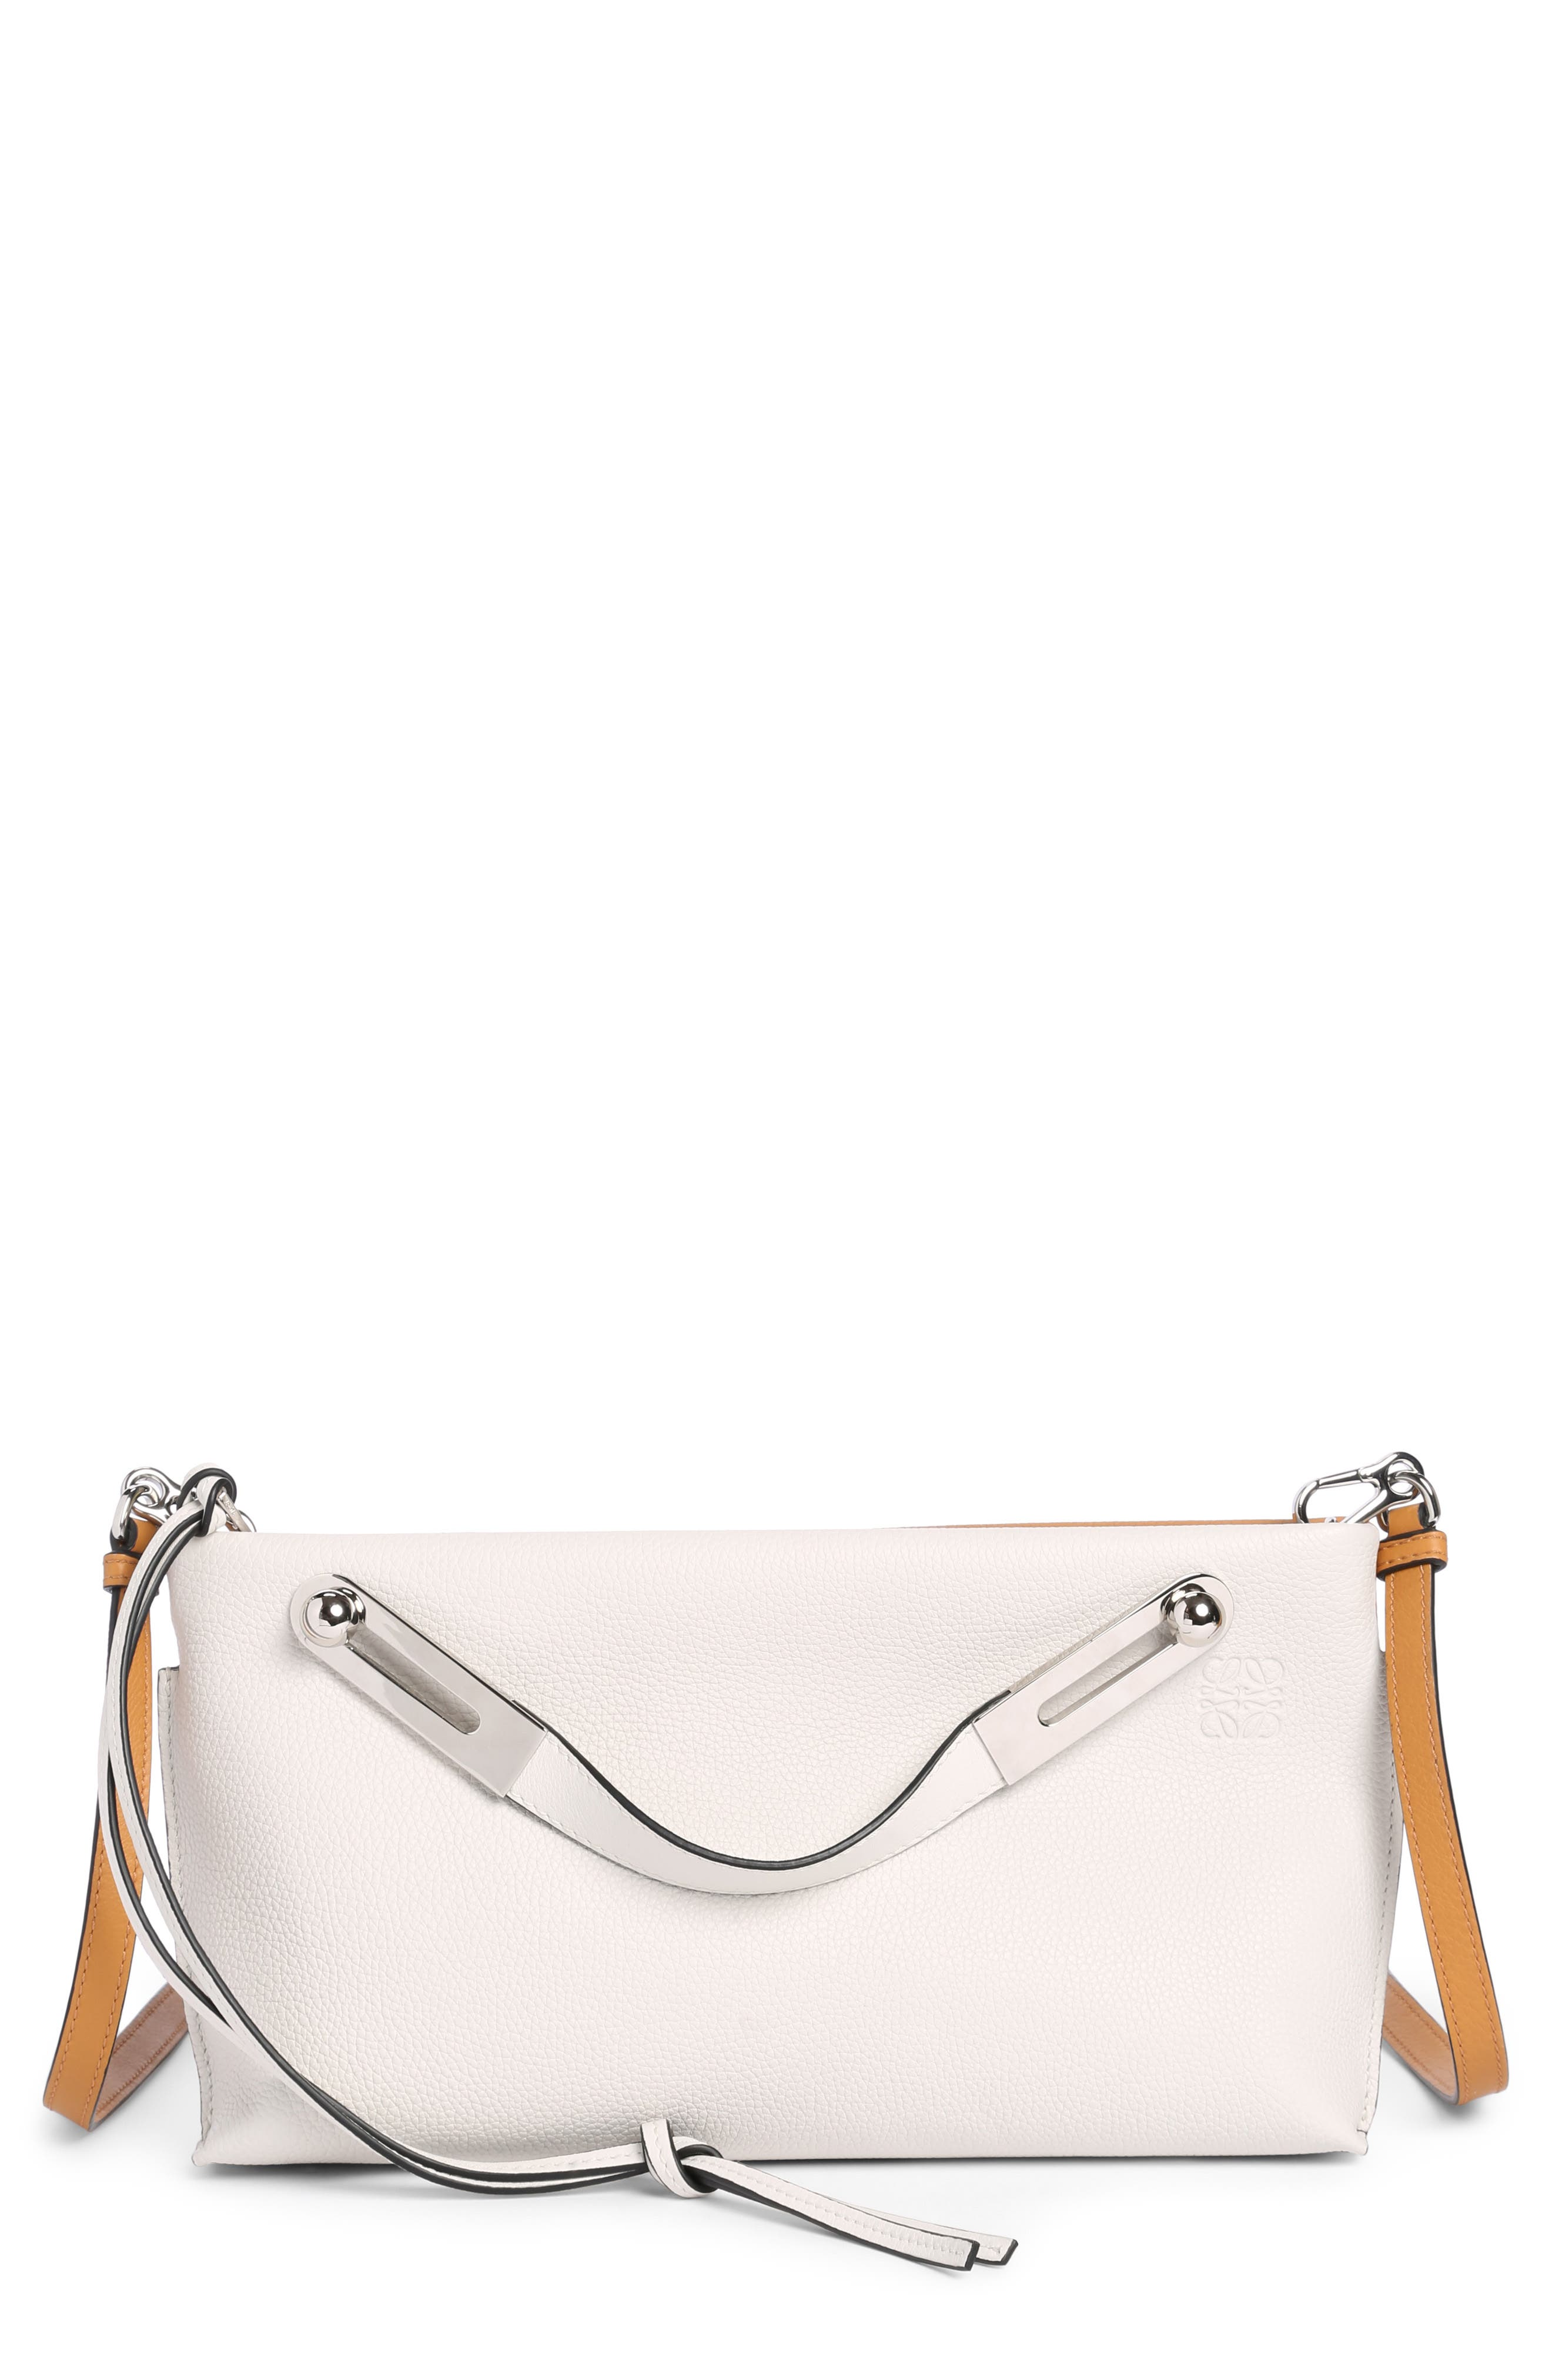 Small Missy Calfskin Leather Crossbody Bag,                             Main thumbnail 1, color,                             Soft White/ Amber